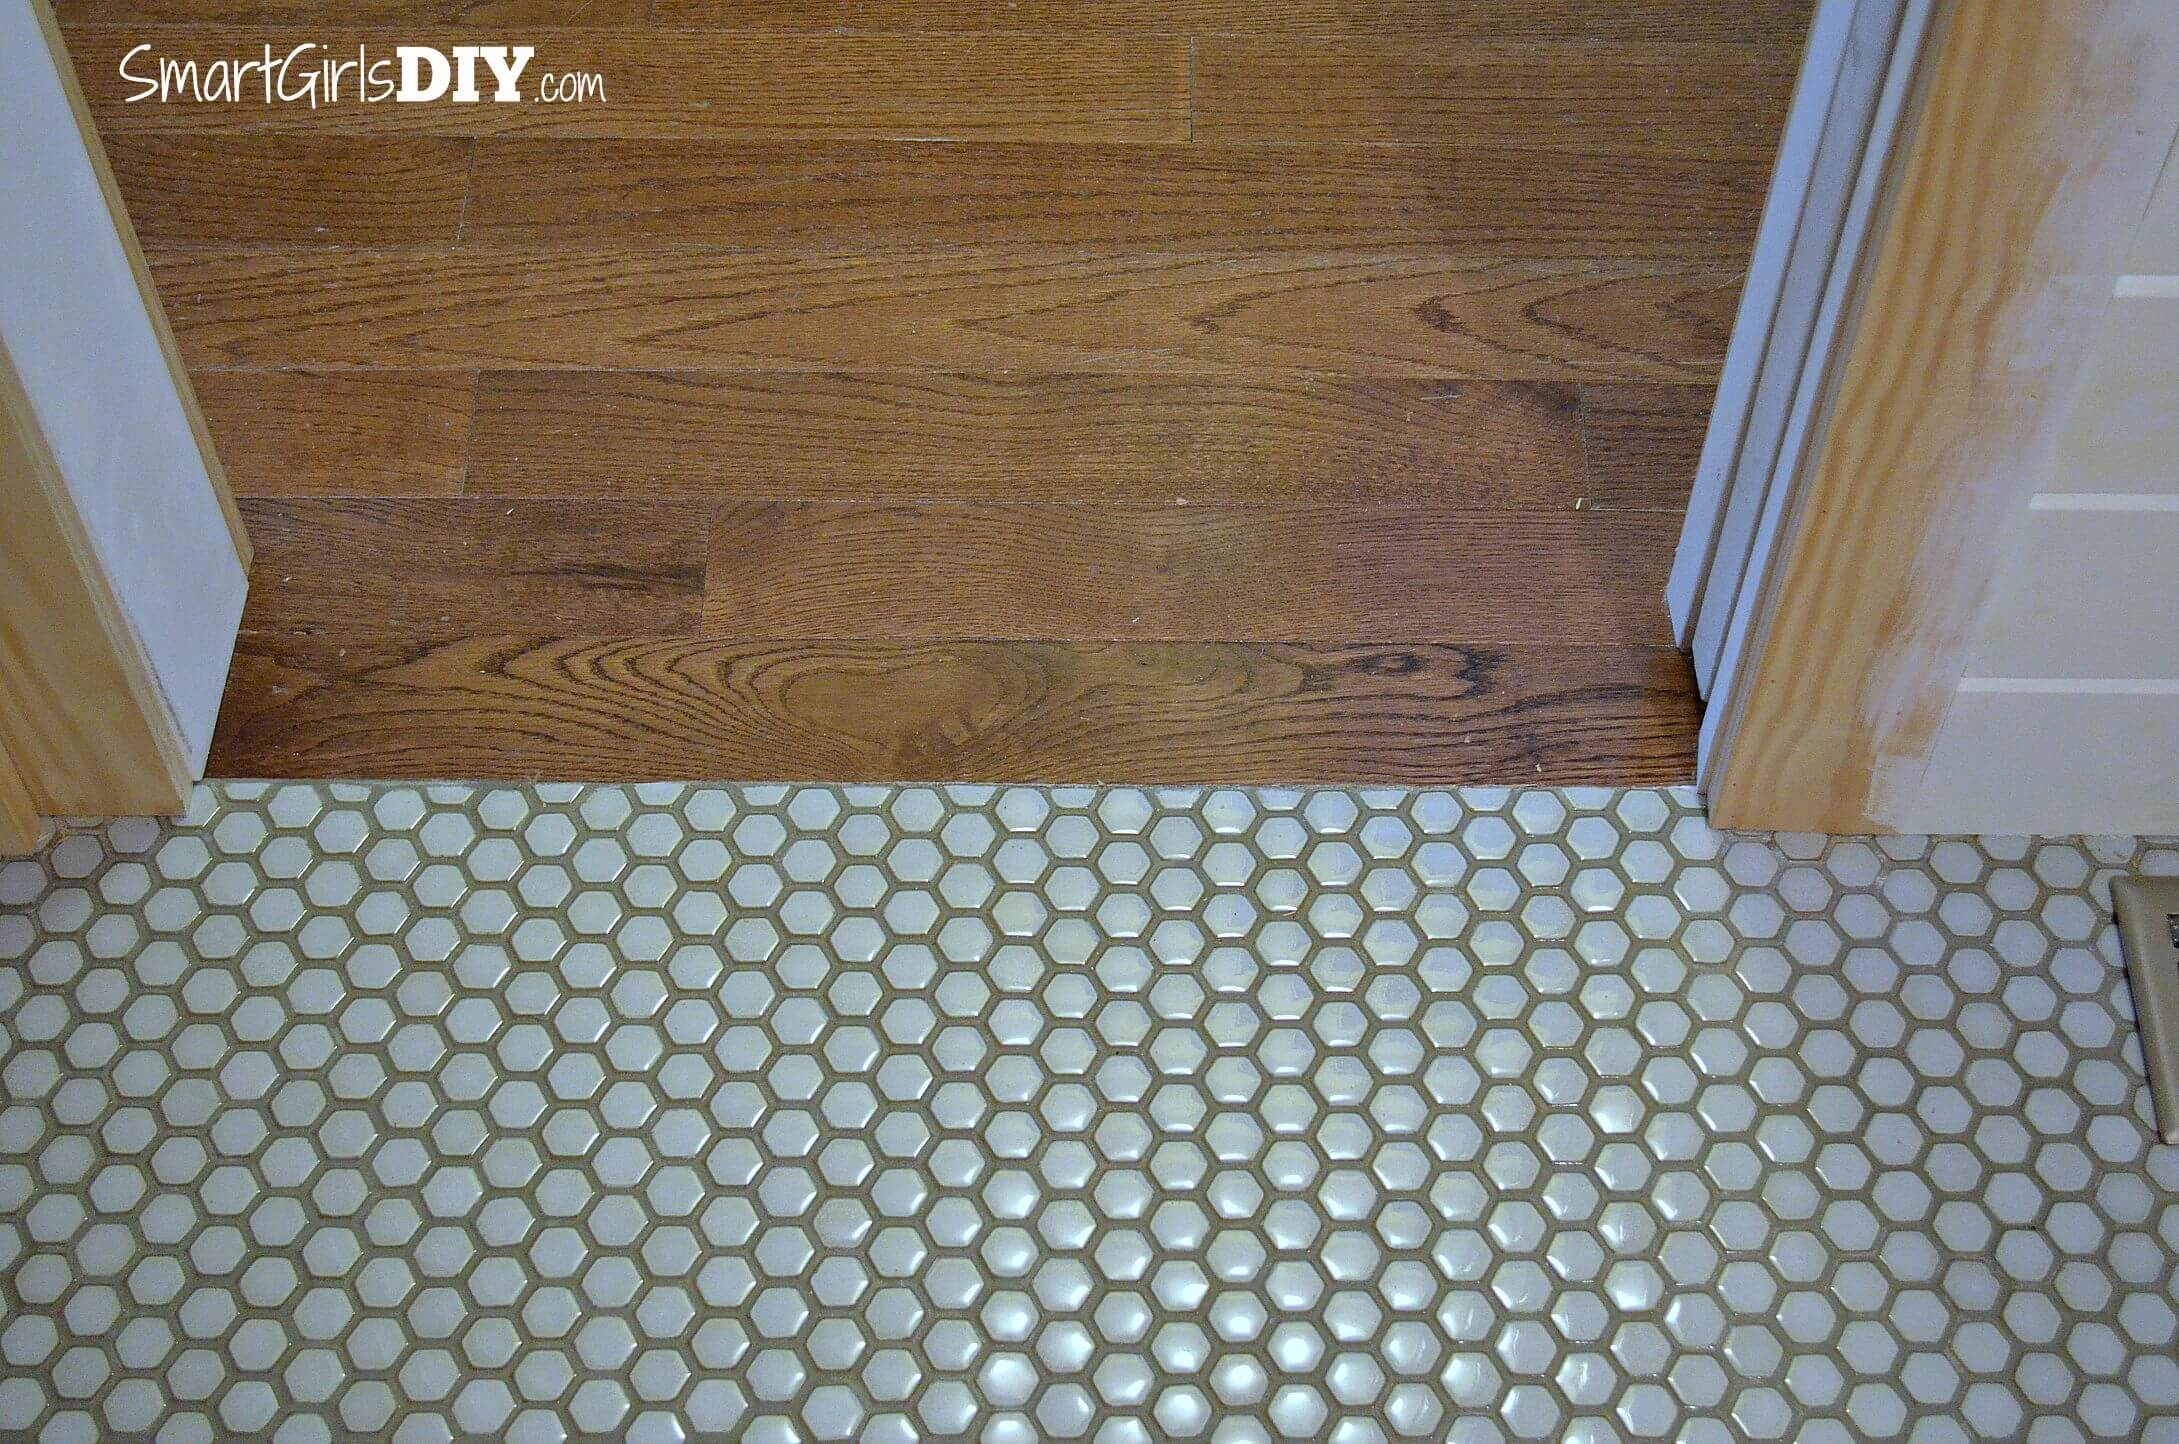 Guest bathroom 7 diy hex tile floor smooth transition between mosaic floor tile and hard wood flooring dailygadgetfo Images